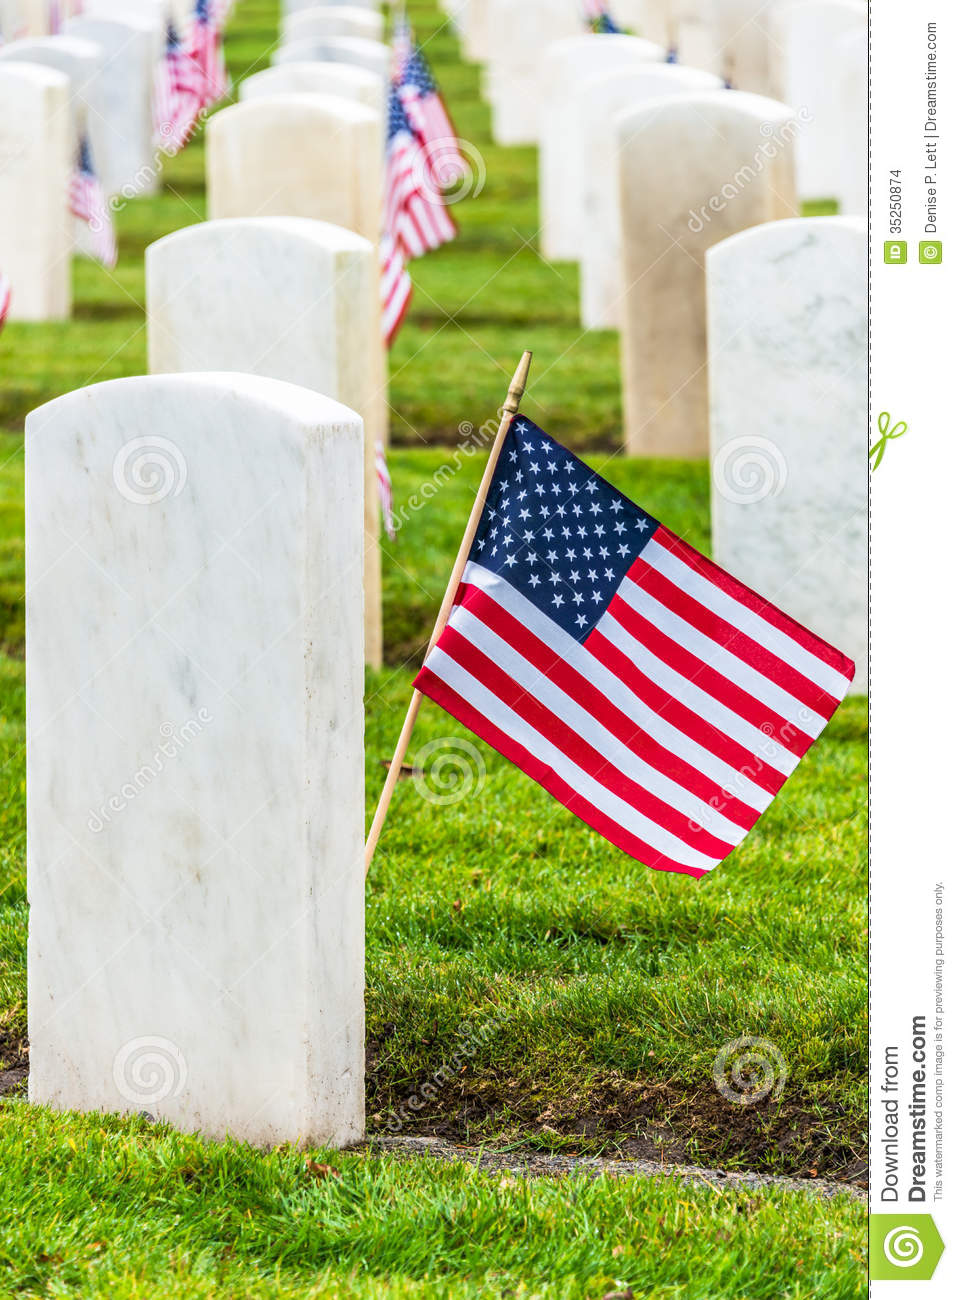 Military Veterans Headstones And American Flags Stock